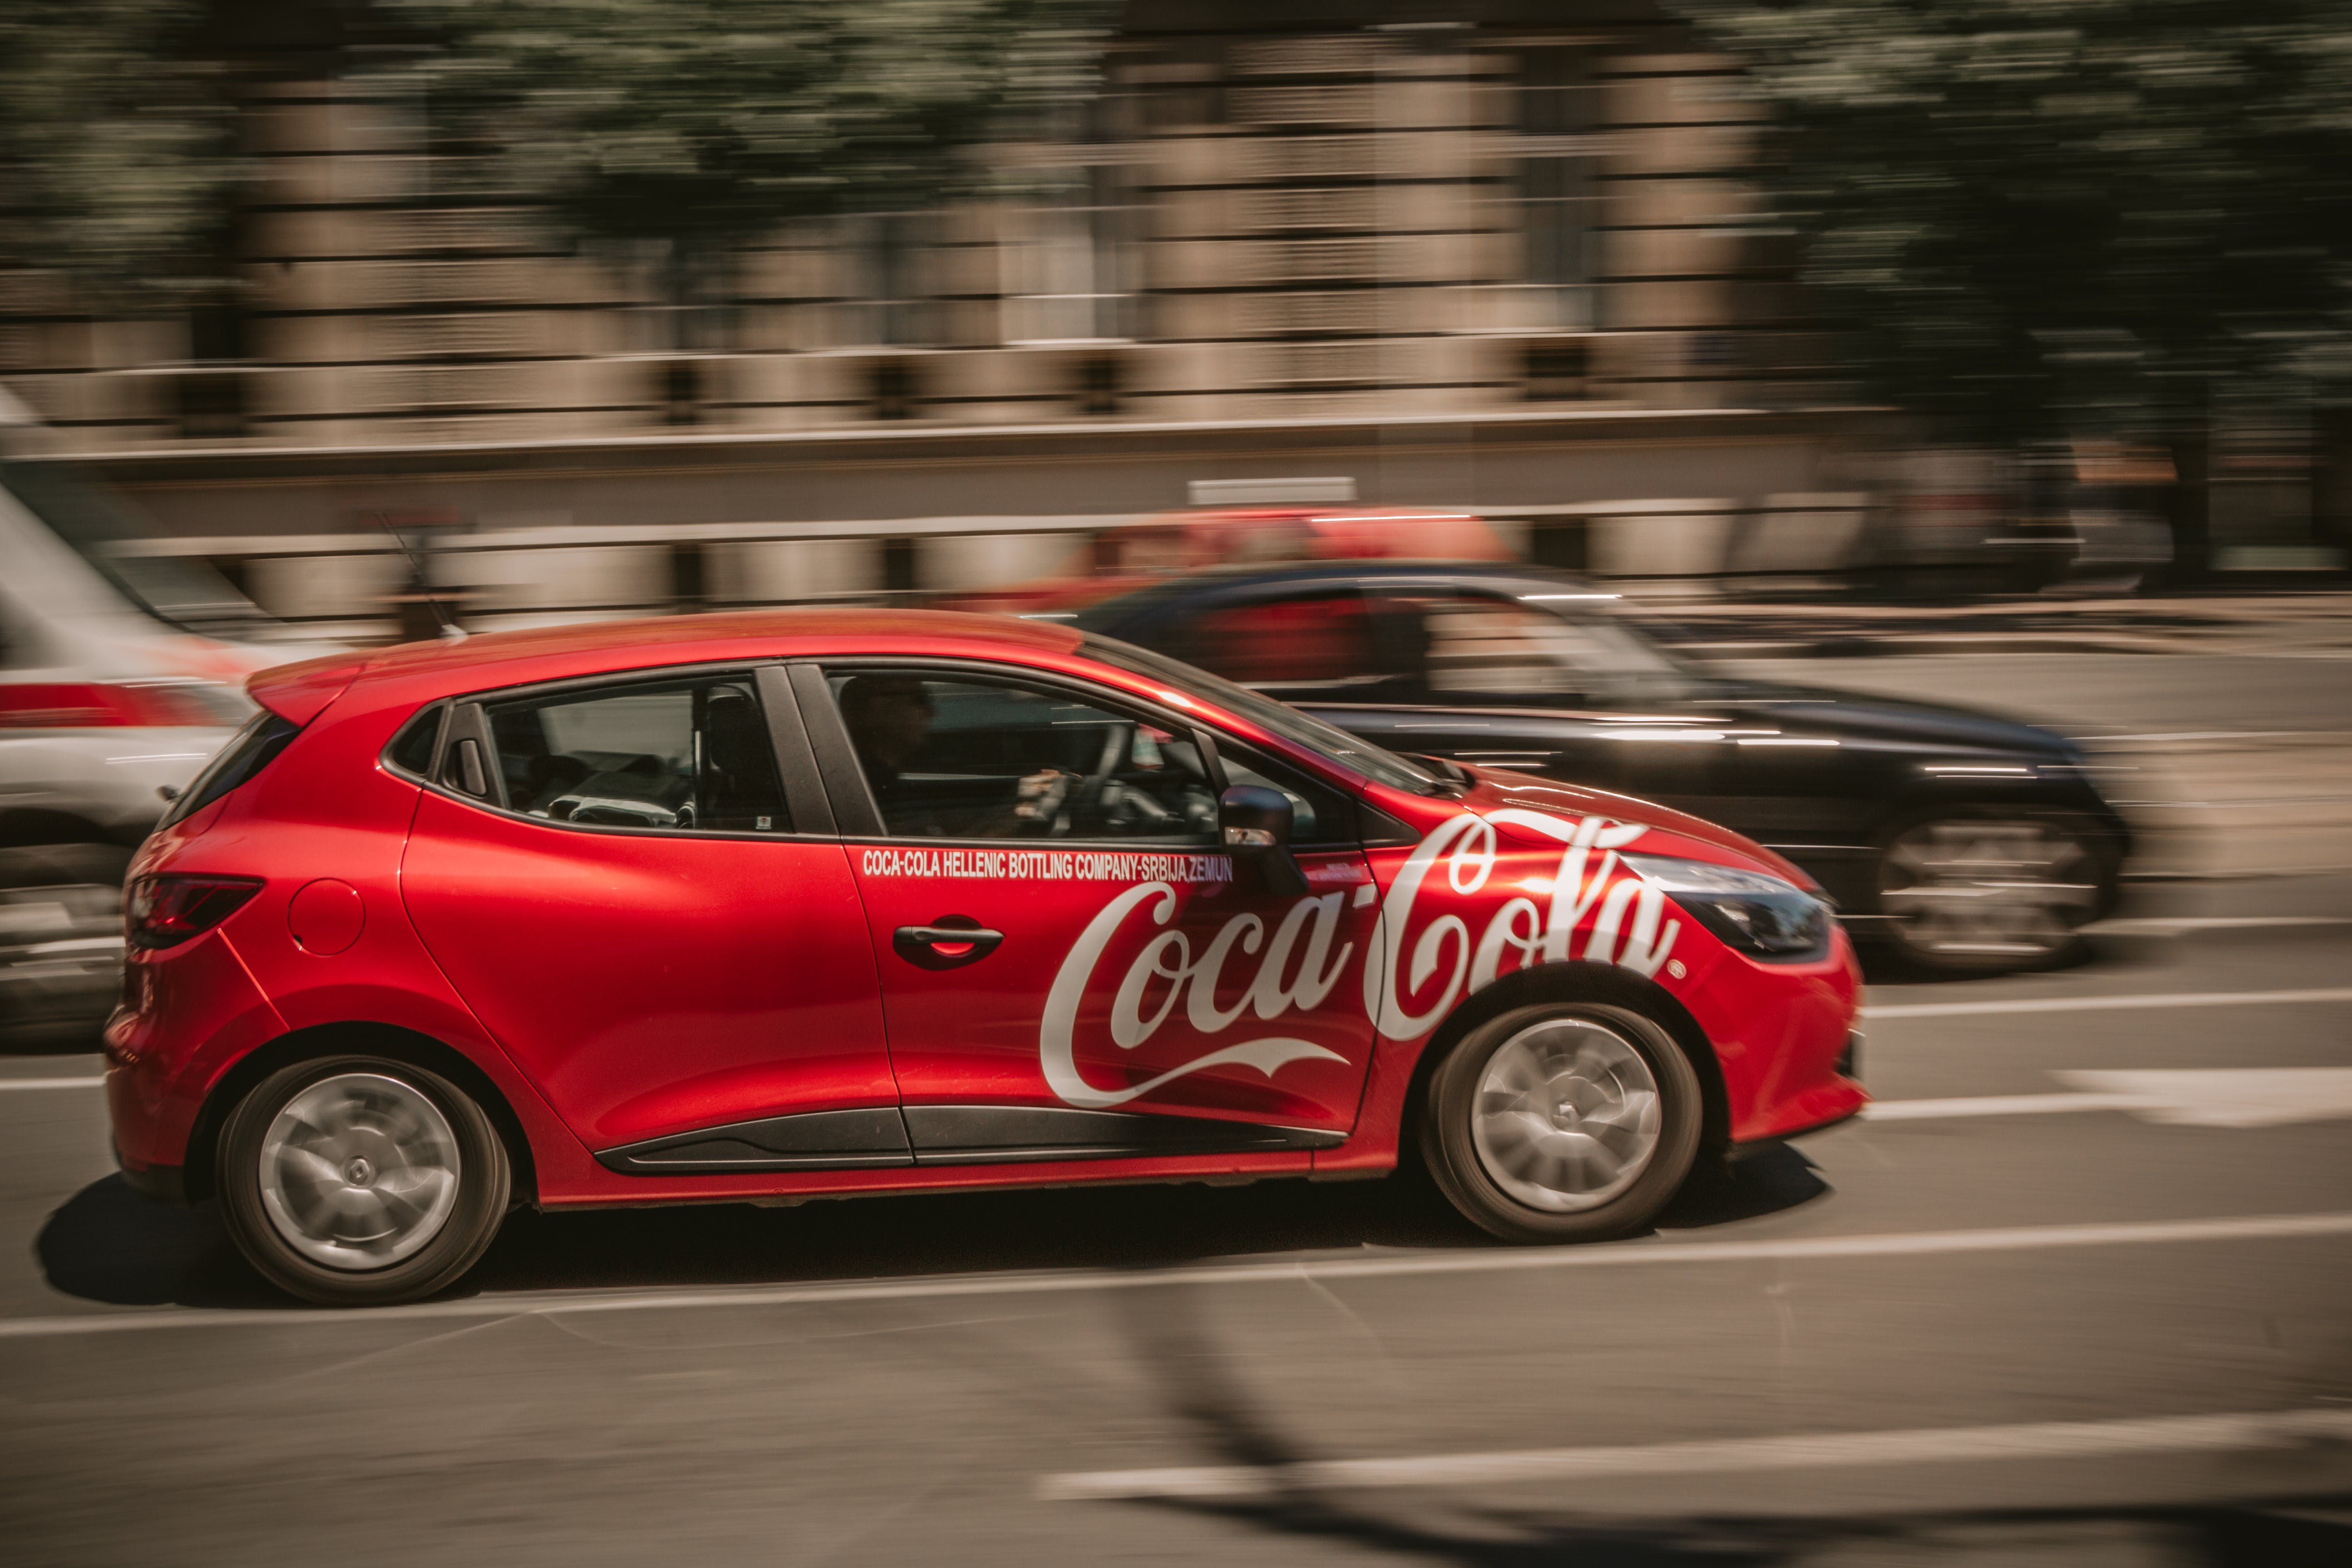 Free stock photo of car, coca cola, paning